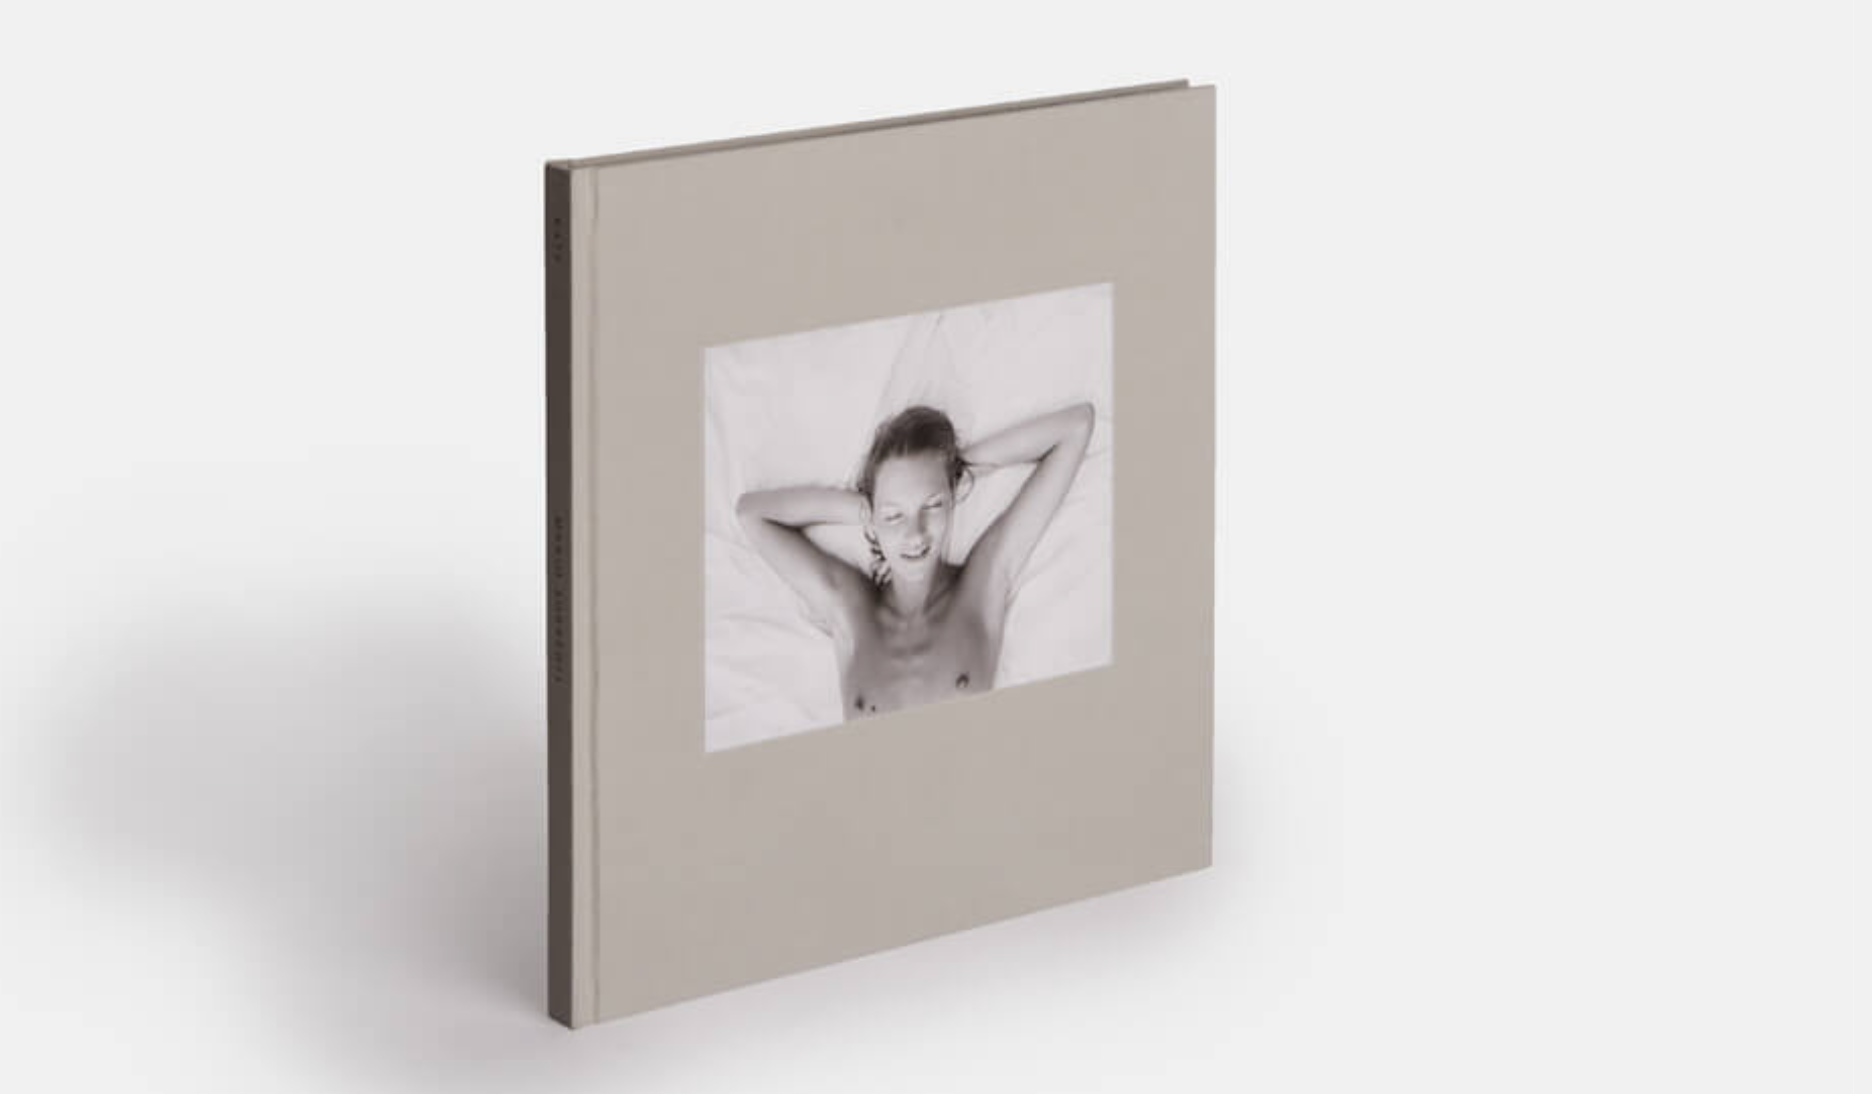 Kate by Mario Sorrenti - In honesty, we are desiring relaxation this festive period. Curl up with this intimate book of photographs of Kate Moss before her rise to fame by then-boyfriend Mario Sorrenti. A book to treasure for its intimacy and for its beautiful portraiture.